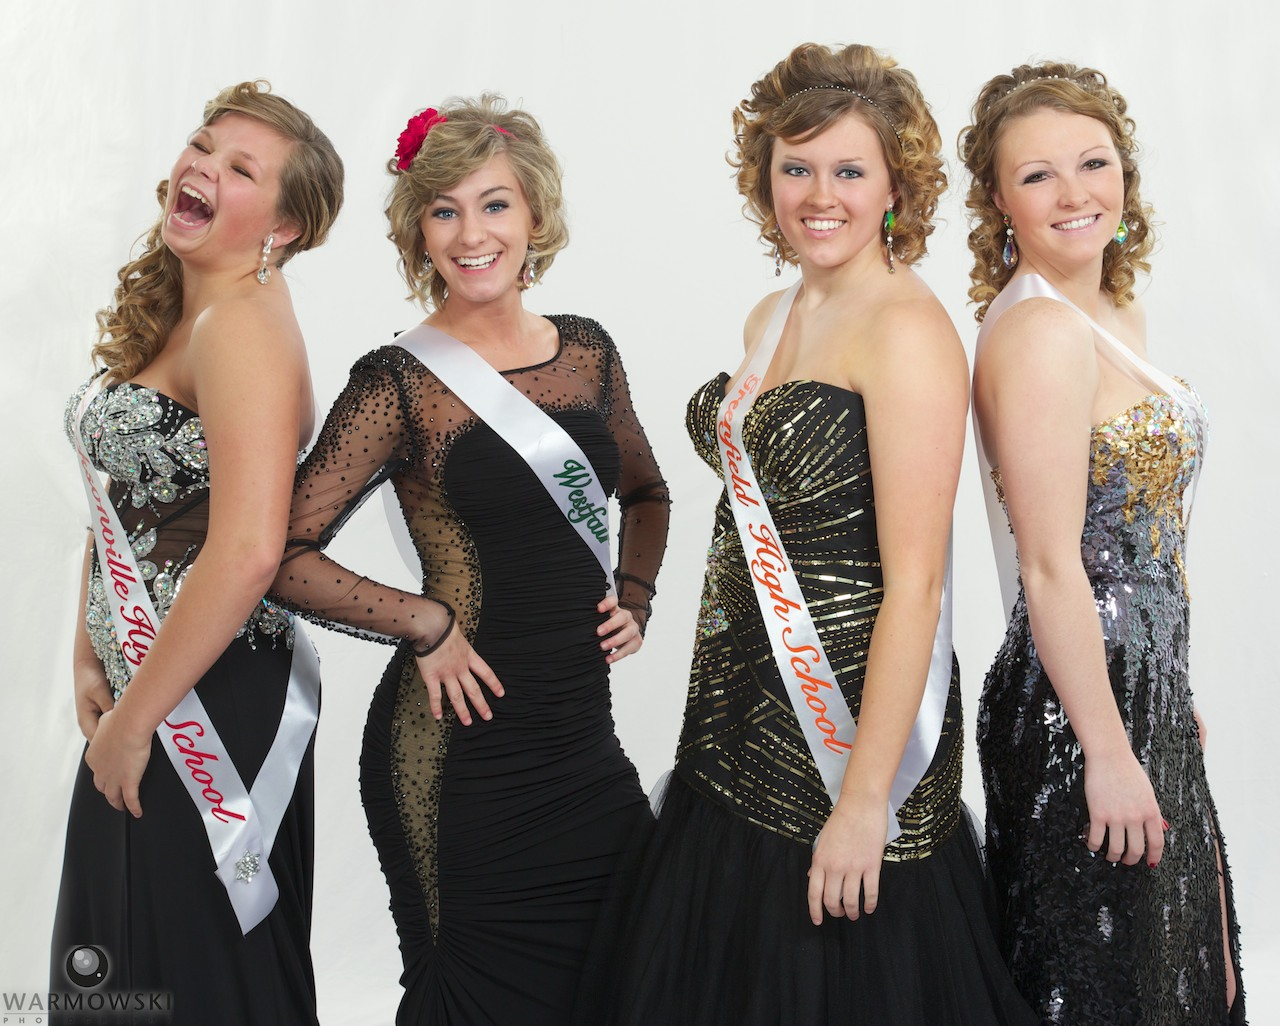 Prom Dresses In Springfield Illinois - Plus Size Tops